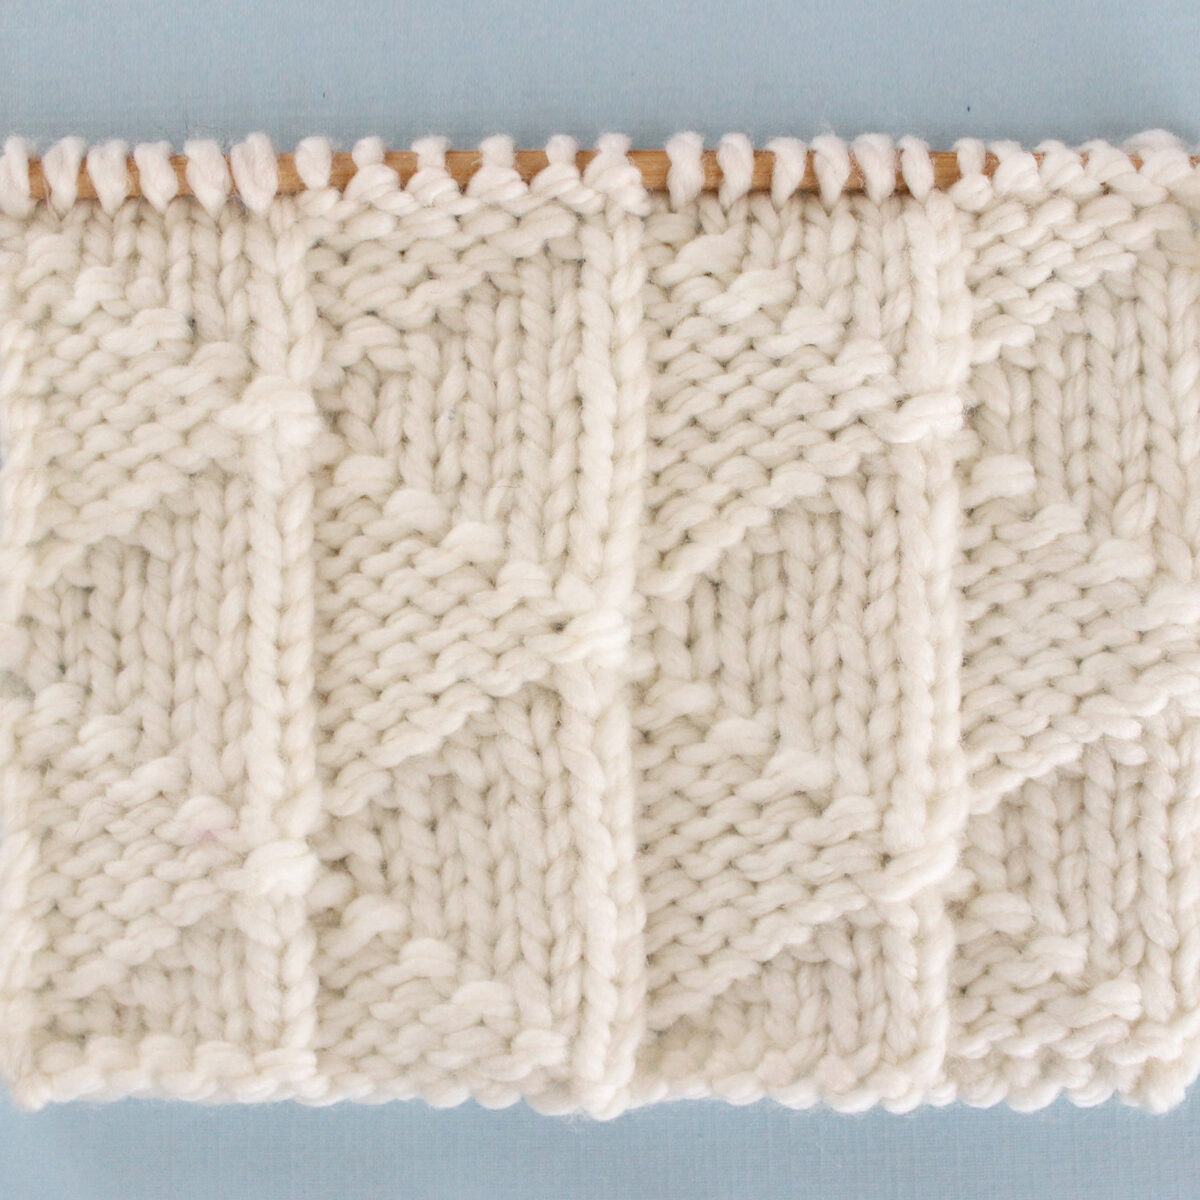 Pennant Pleating Knit Stitch Pattern in white yarn on knitting needle.